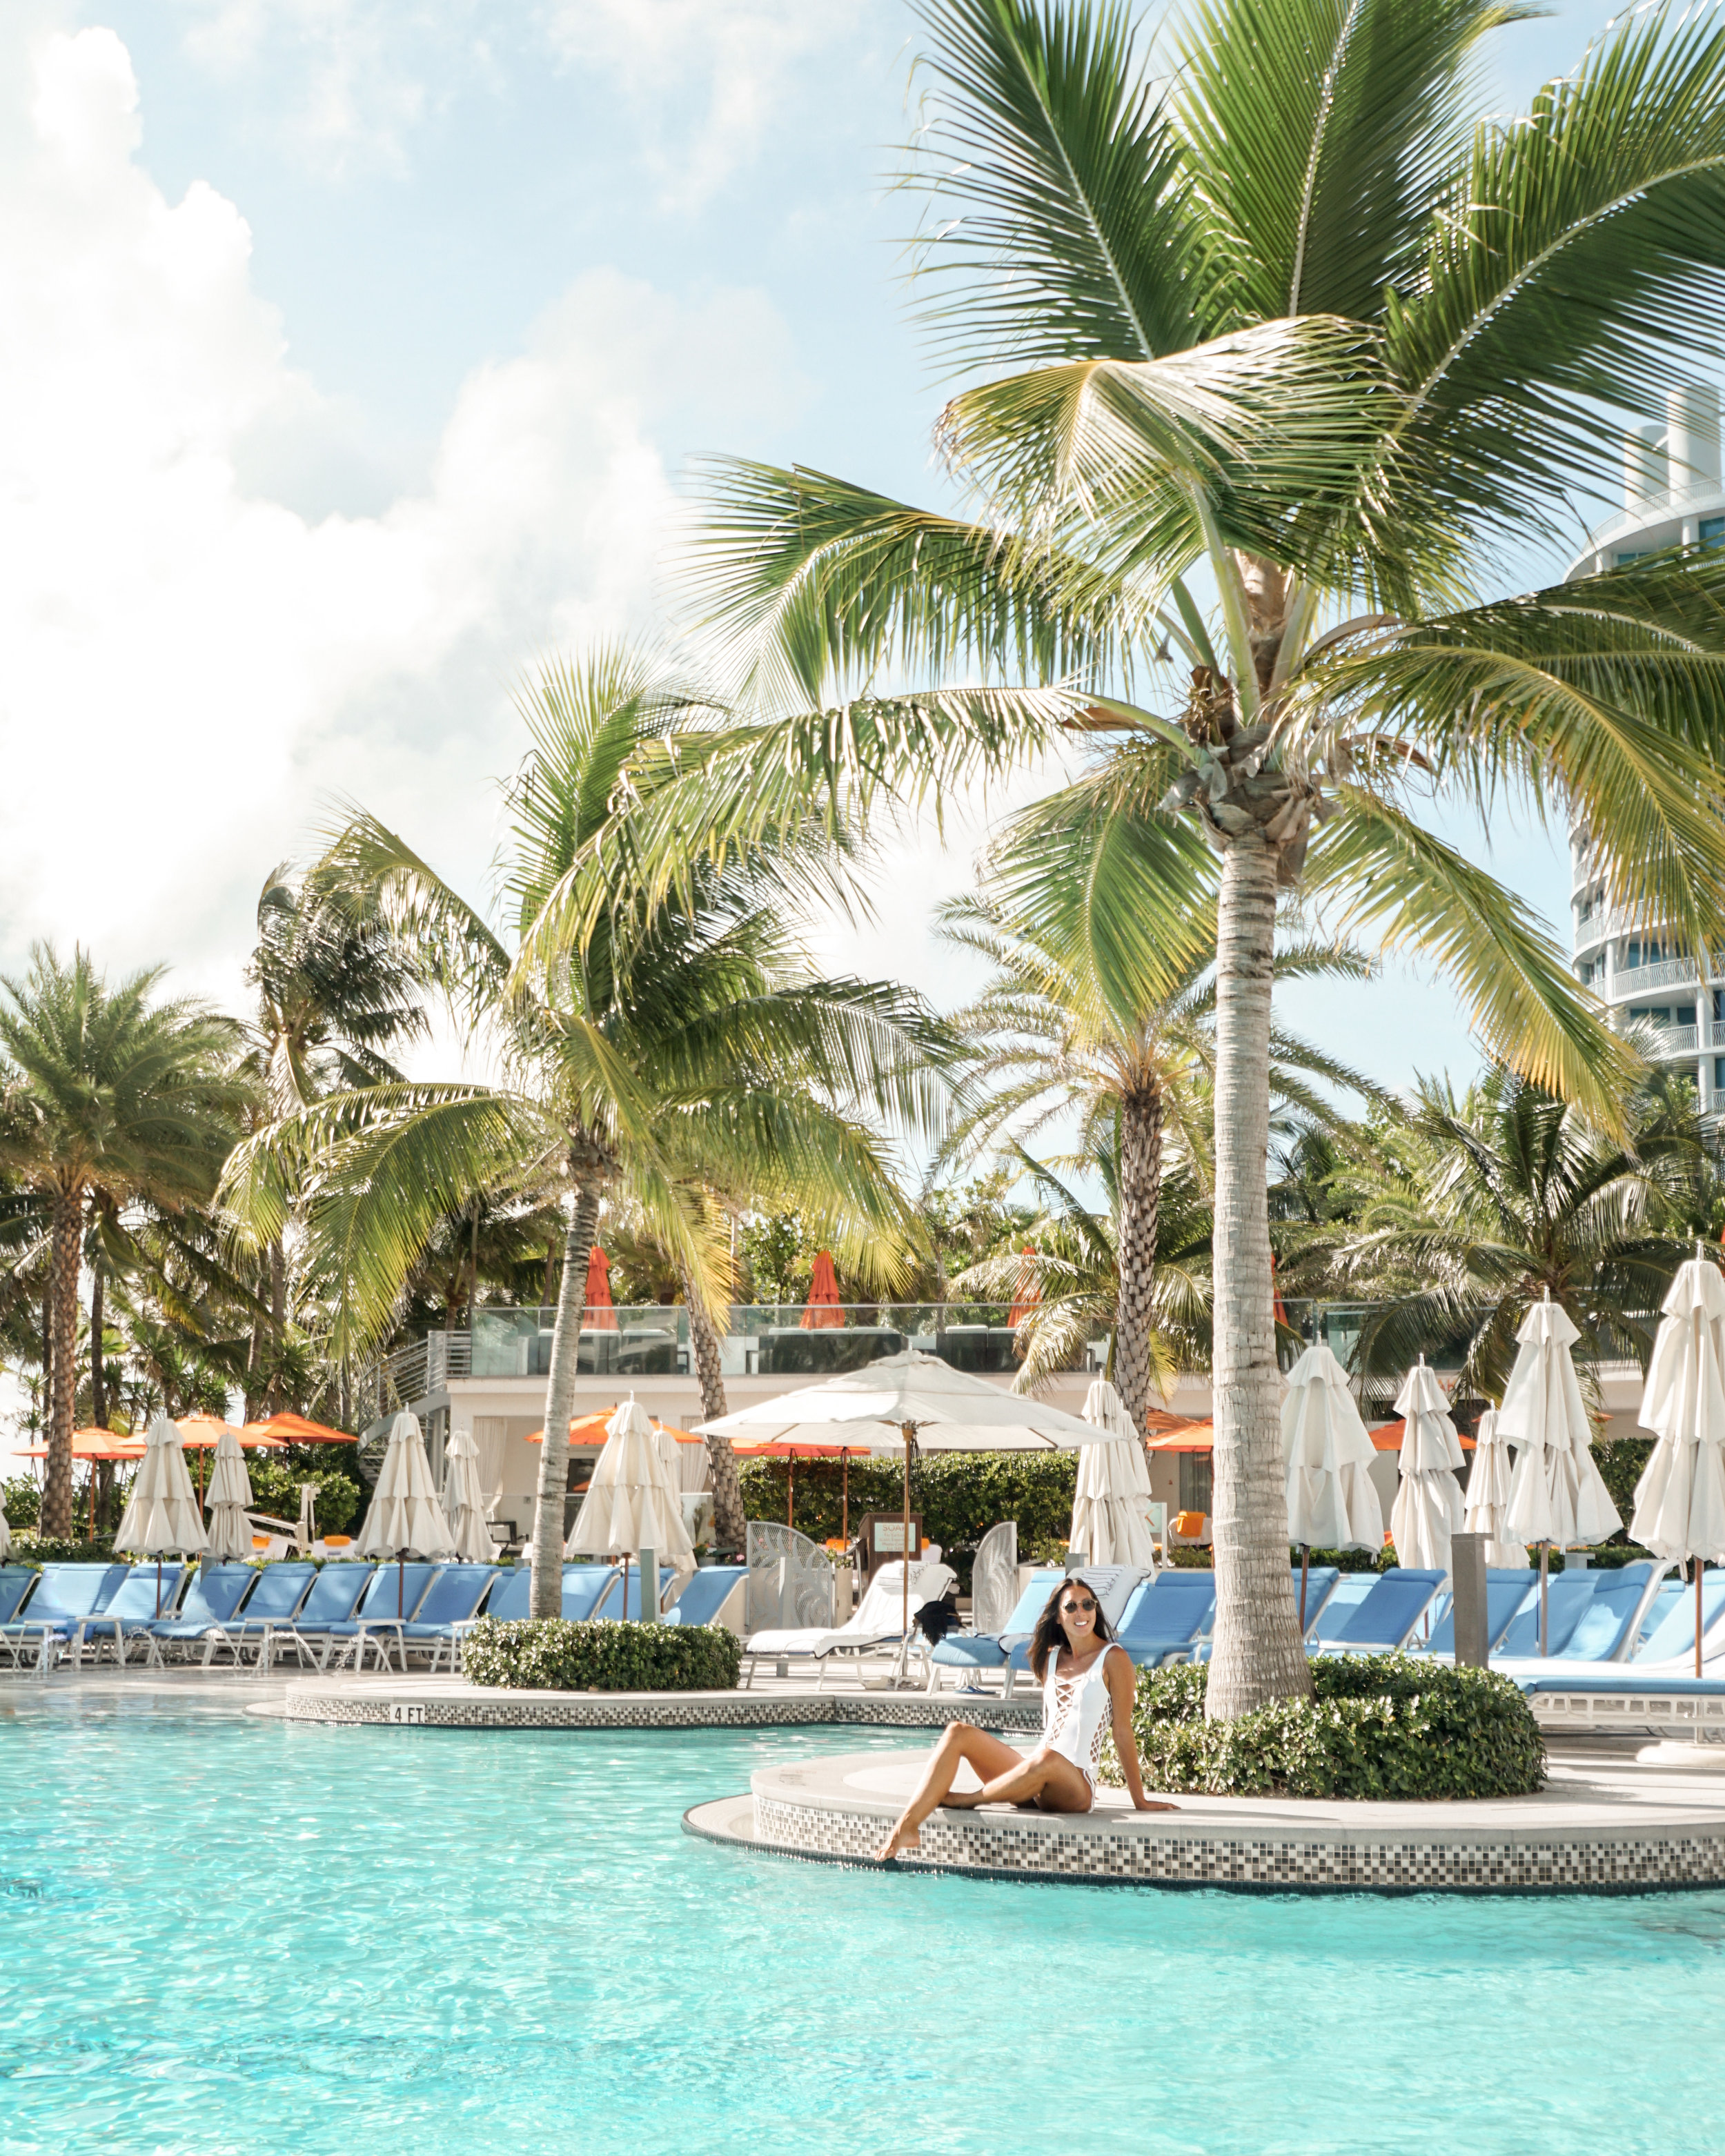 The pool at the  Loews Miami Beach Hotel